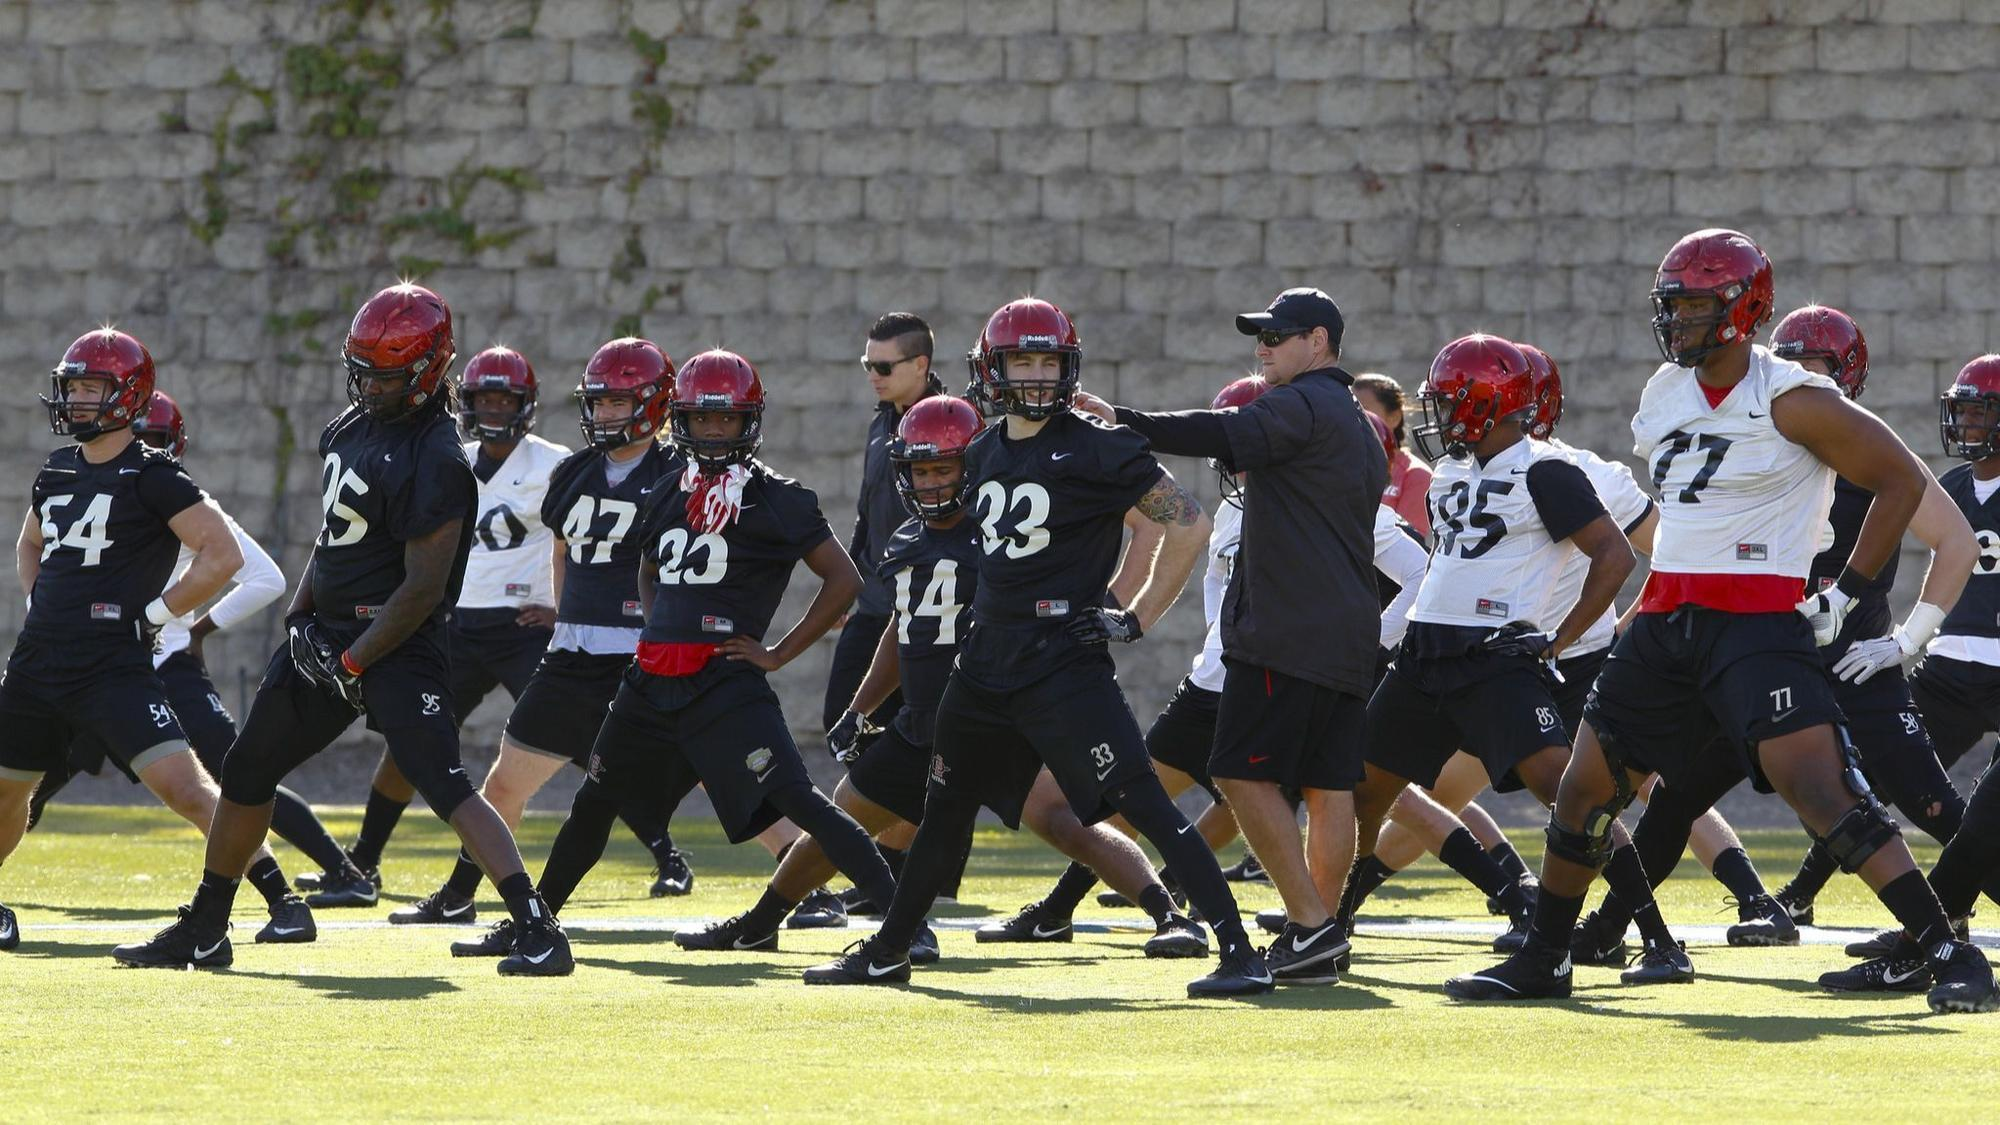 Sd-sp-azfoot-sdsu-wraps-up-spring-practice-0314